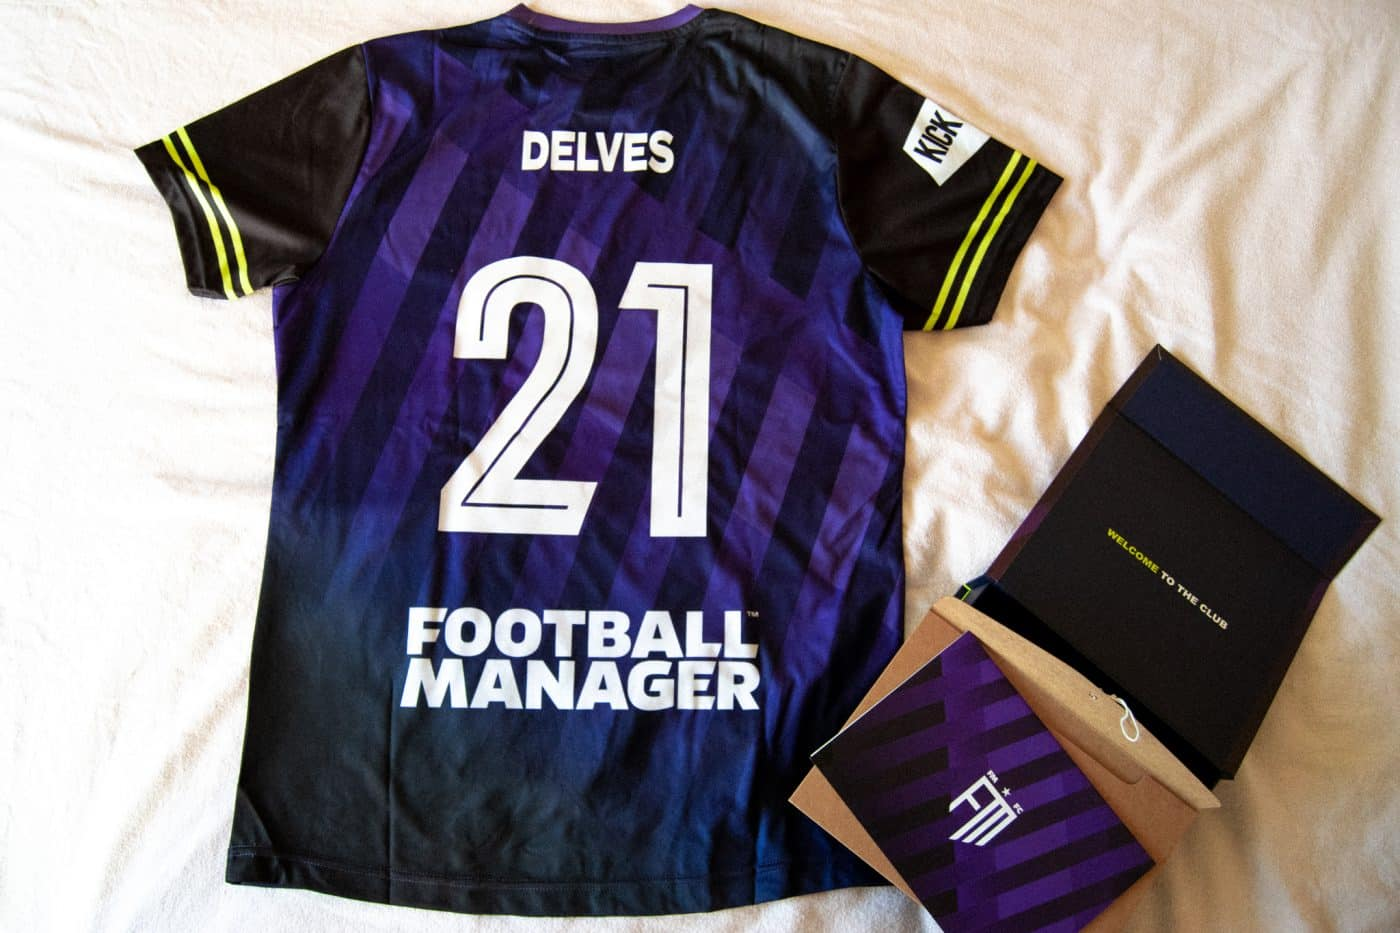 maillot-football-manager-1